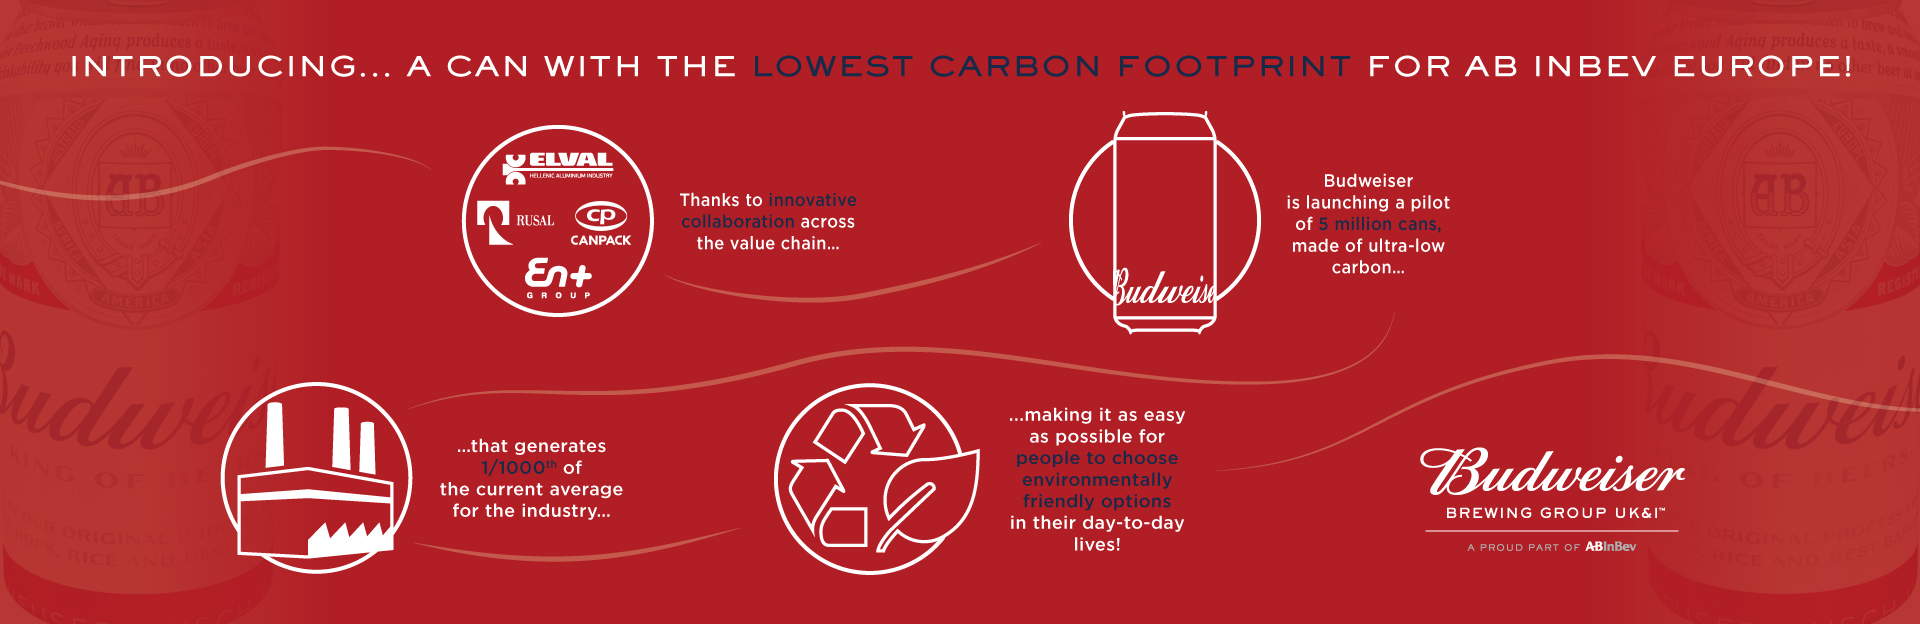 Thanks to innovative collaboration across the value chain, Budweister is launching a pilot of 5 million cans, made of ultra-low carbon that generates 1/1000th of the current average for the industry making it as easy as possible for people to choose environmentally friendly options in their day-to-day lives!